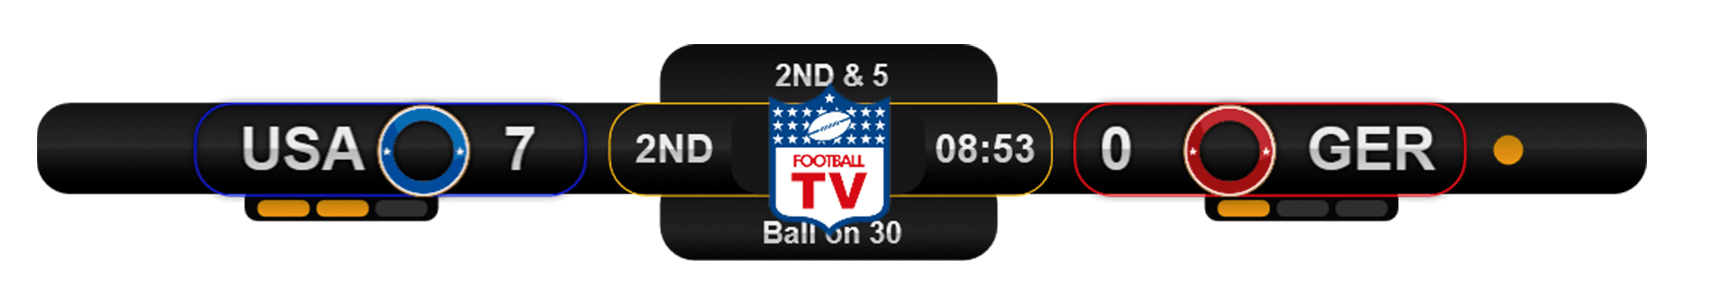 ncaa football scores from yesterday ncaaf score